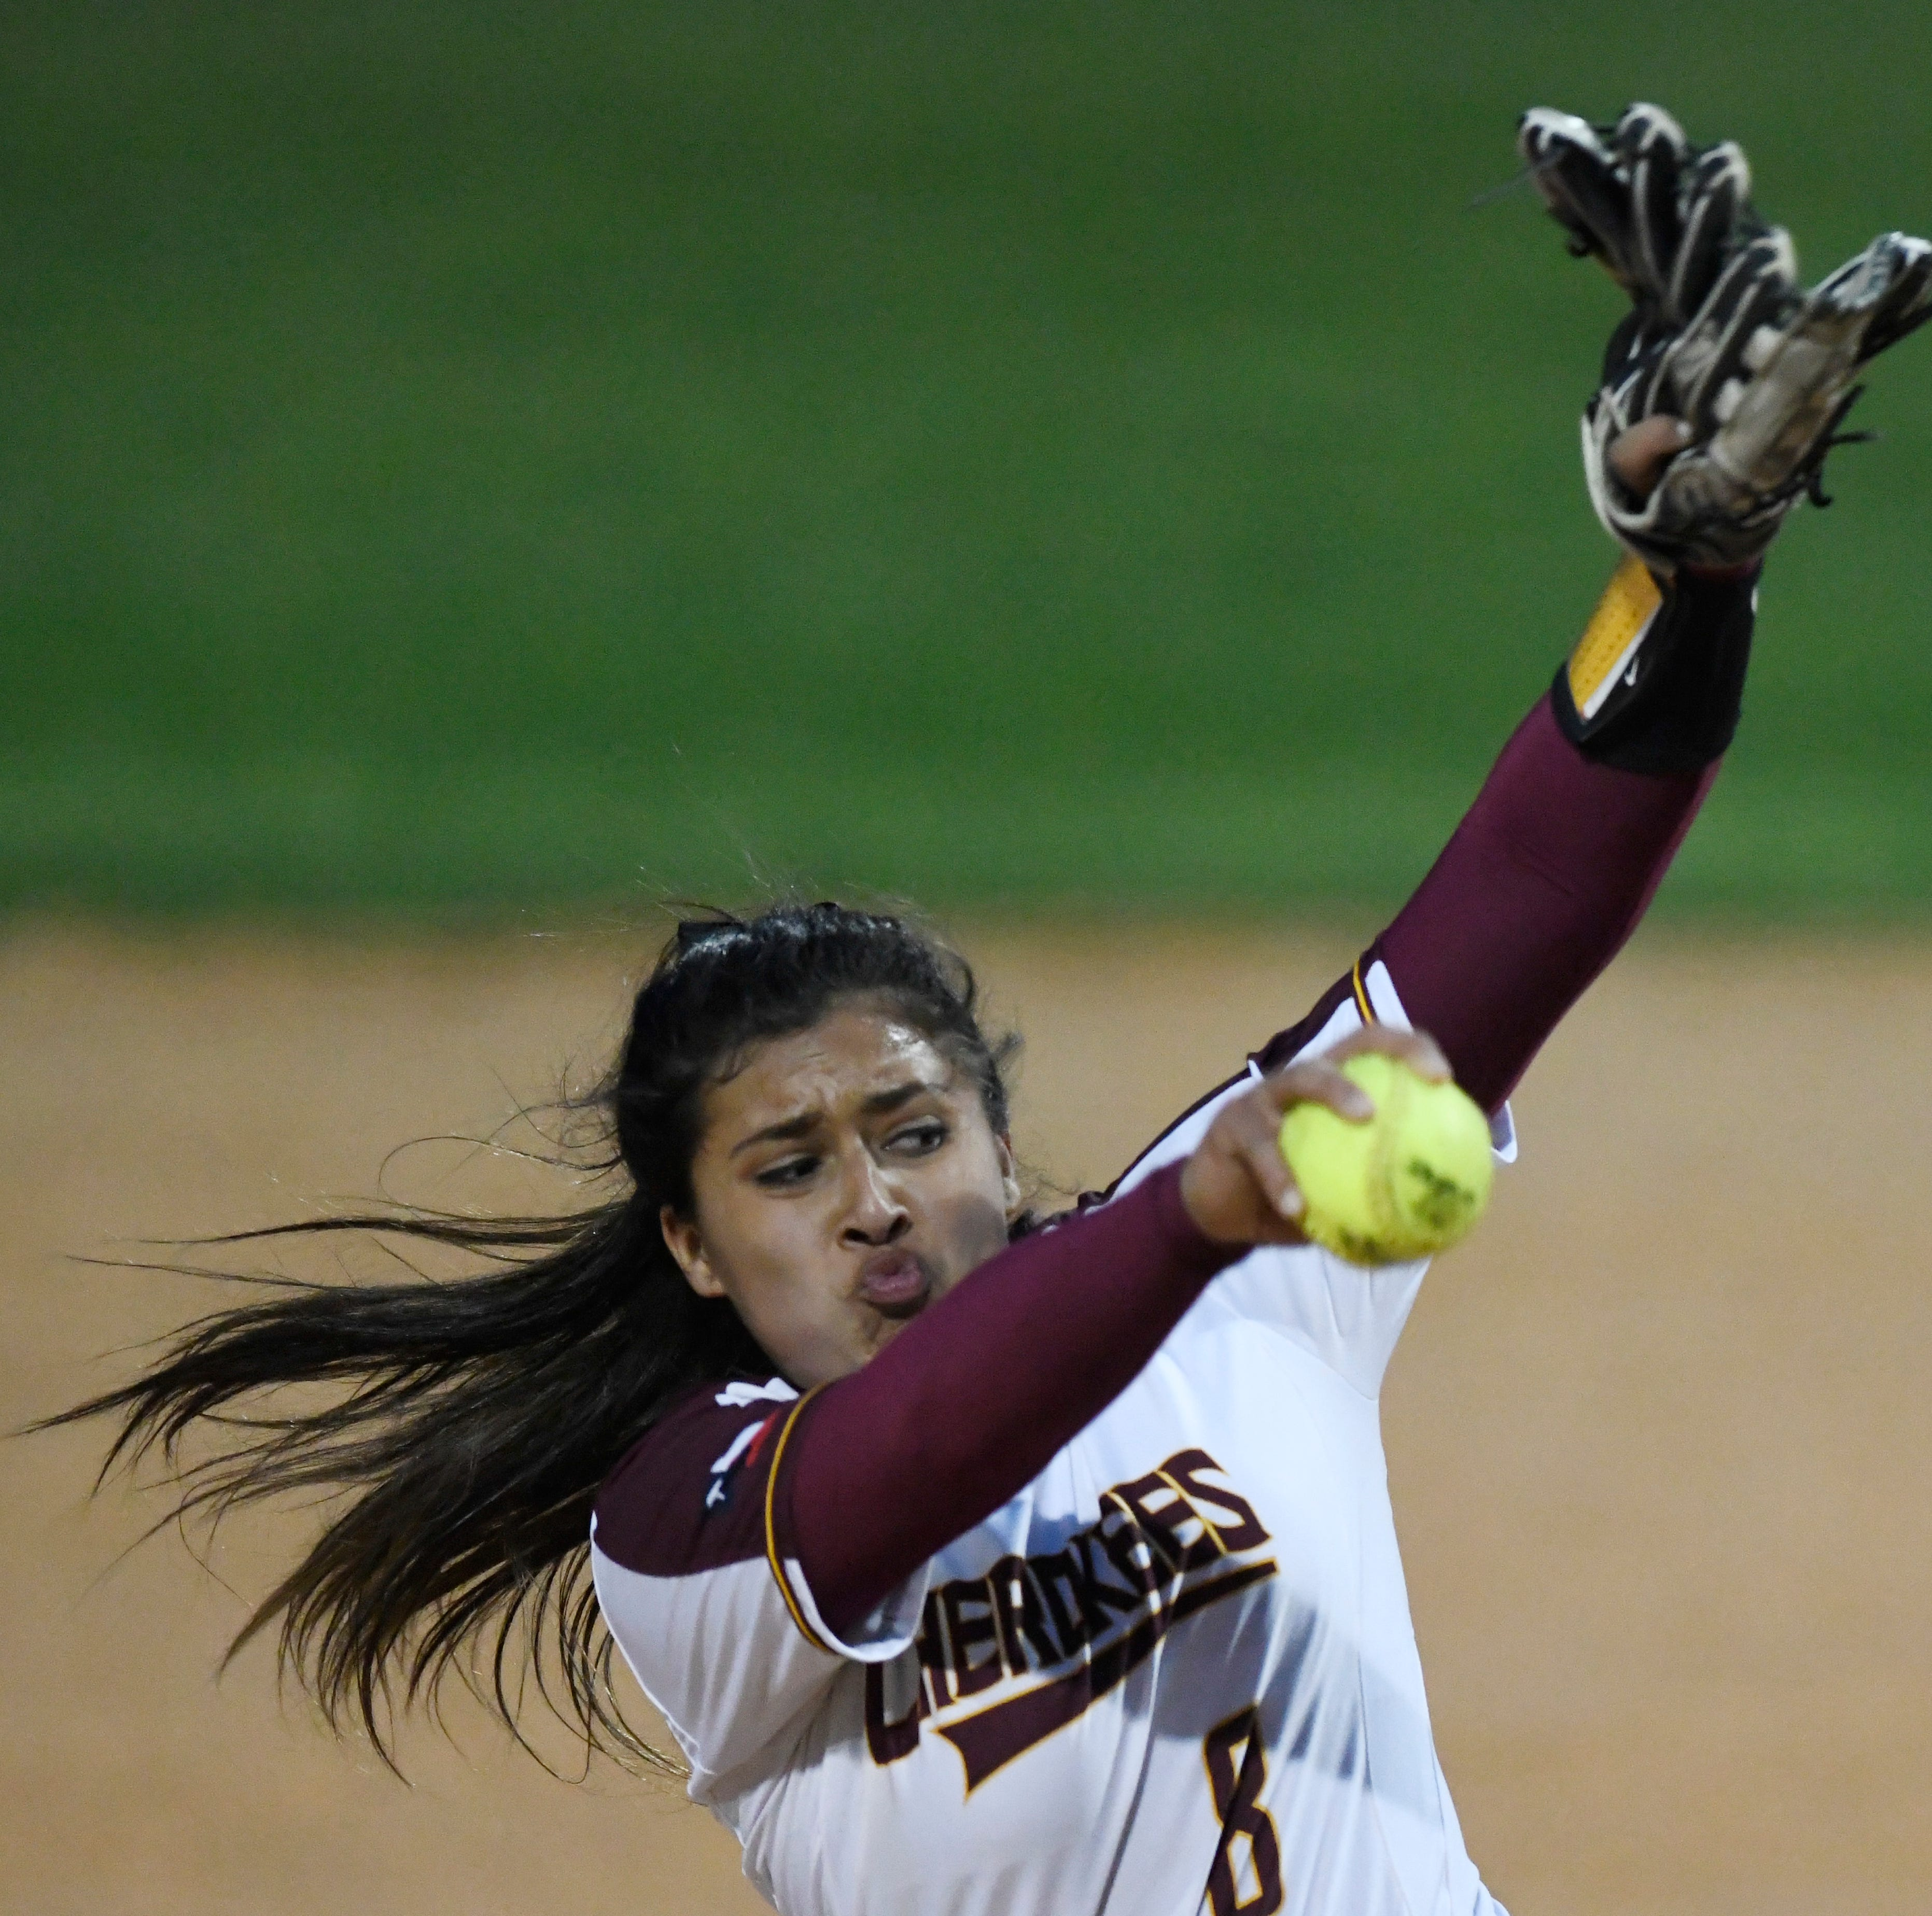 Tuloso-Midway tops Flour Bluff in high school softball